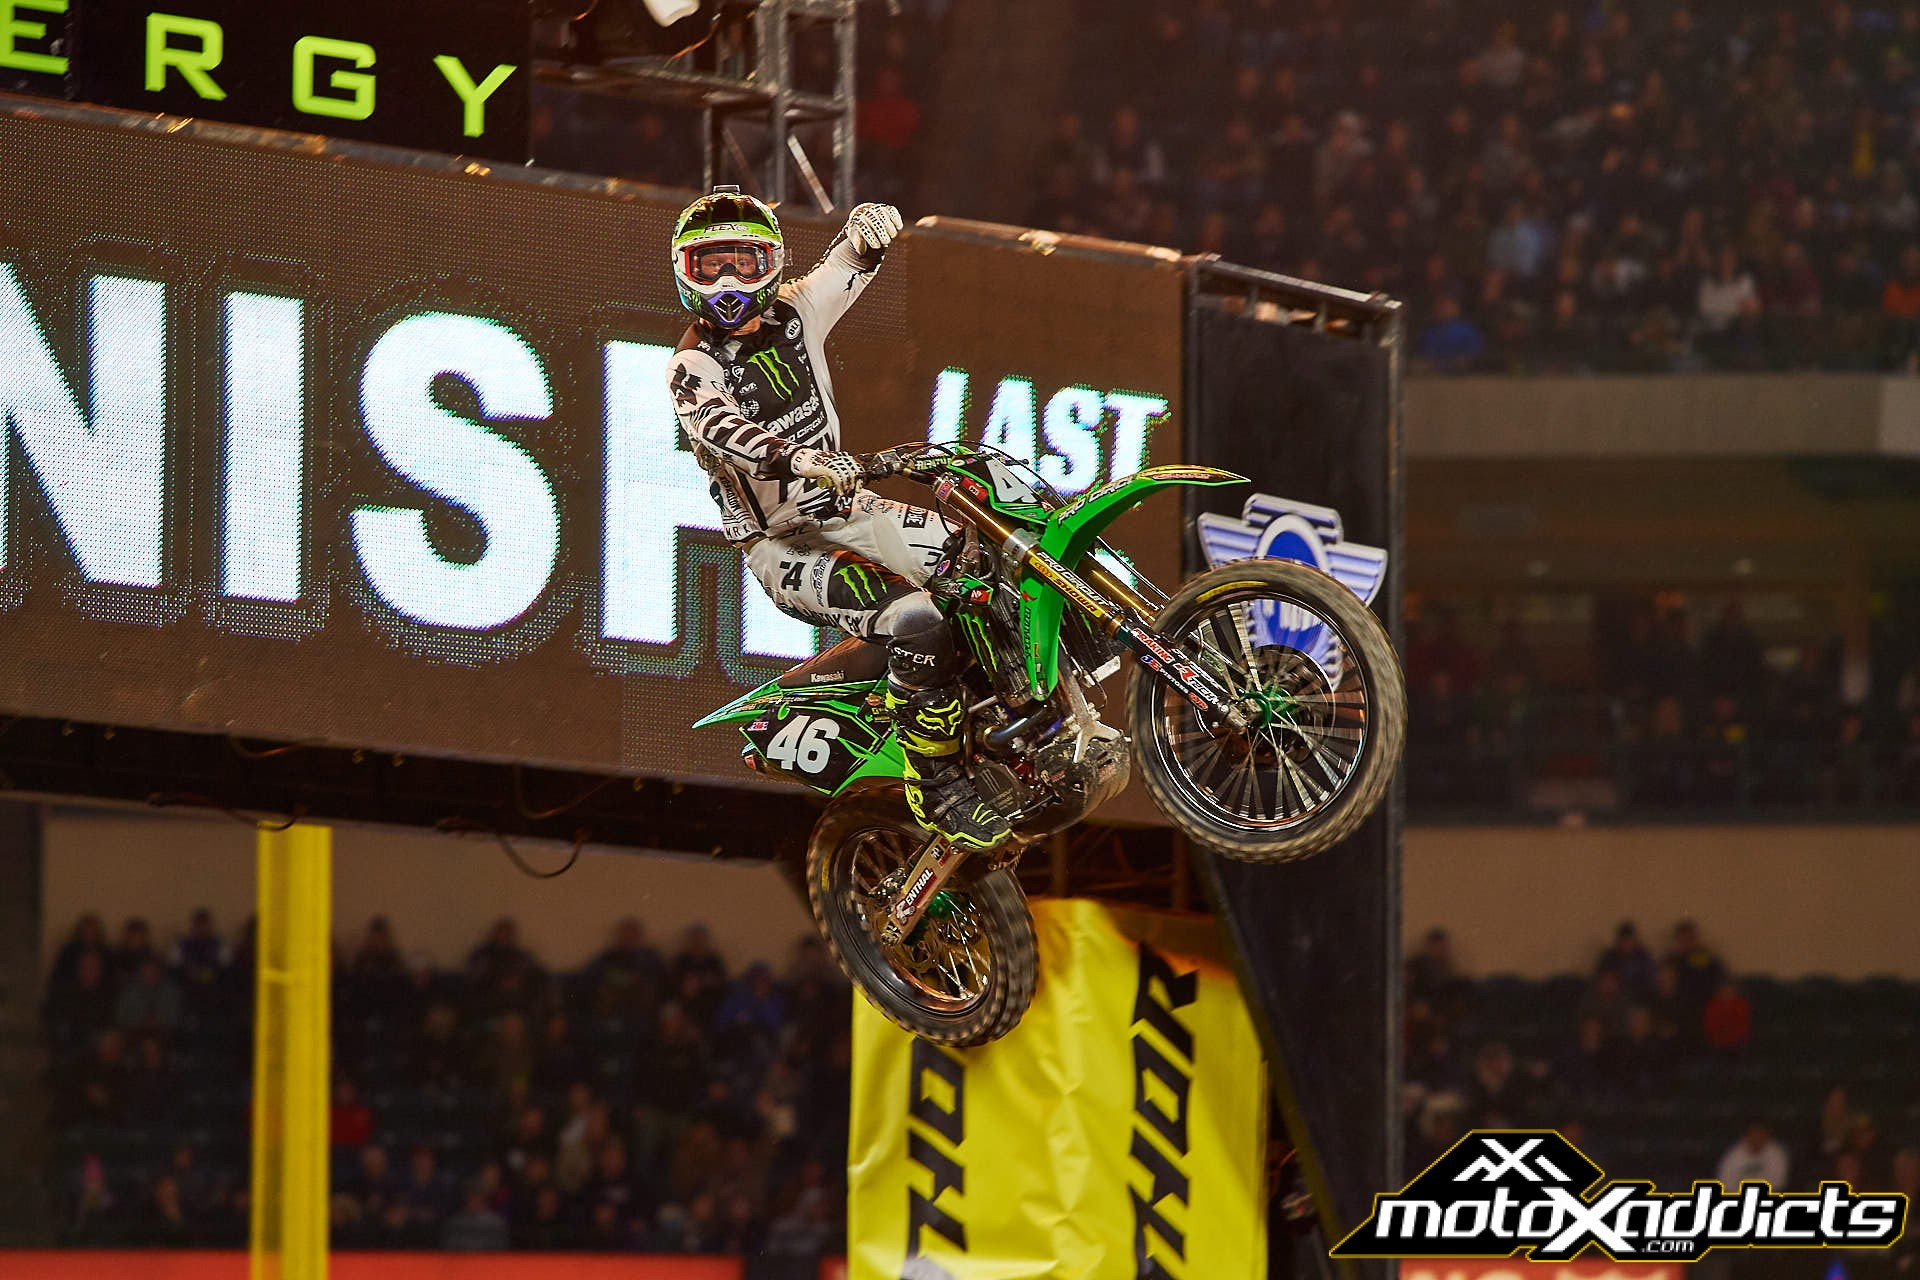 Justin hill scored his first win of 2017 and the fourth of his 250SX career.